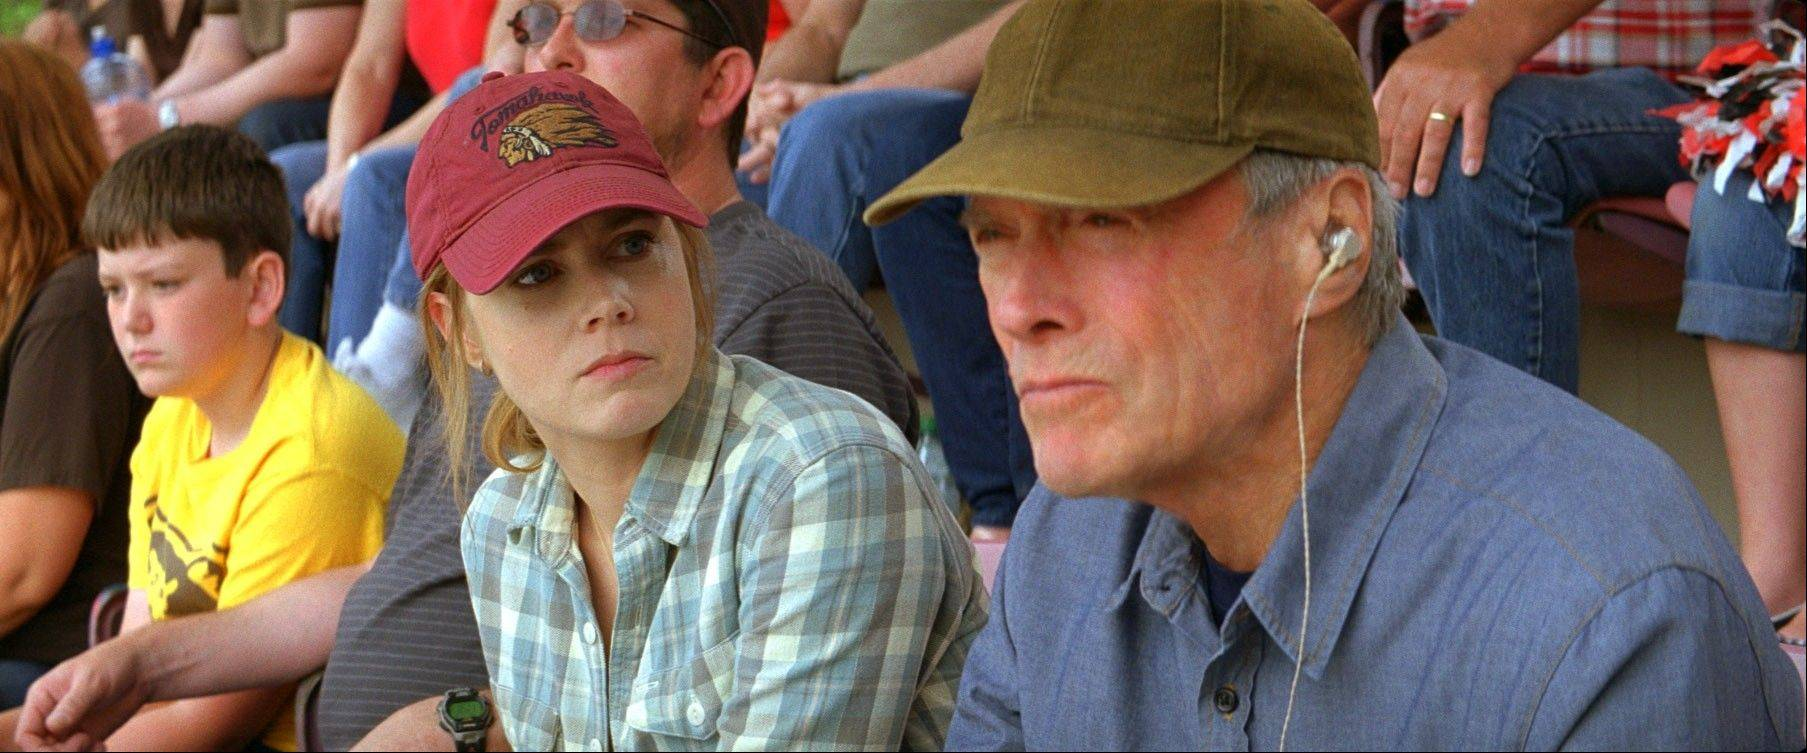 "Amy Adams stars with Clint Eastwood in Robert Lorenz's ""Trouble With the Curve,"" which brought in $12.7 million in its first weekend in theaters."